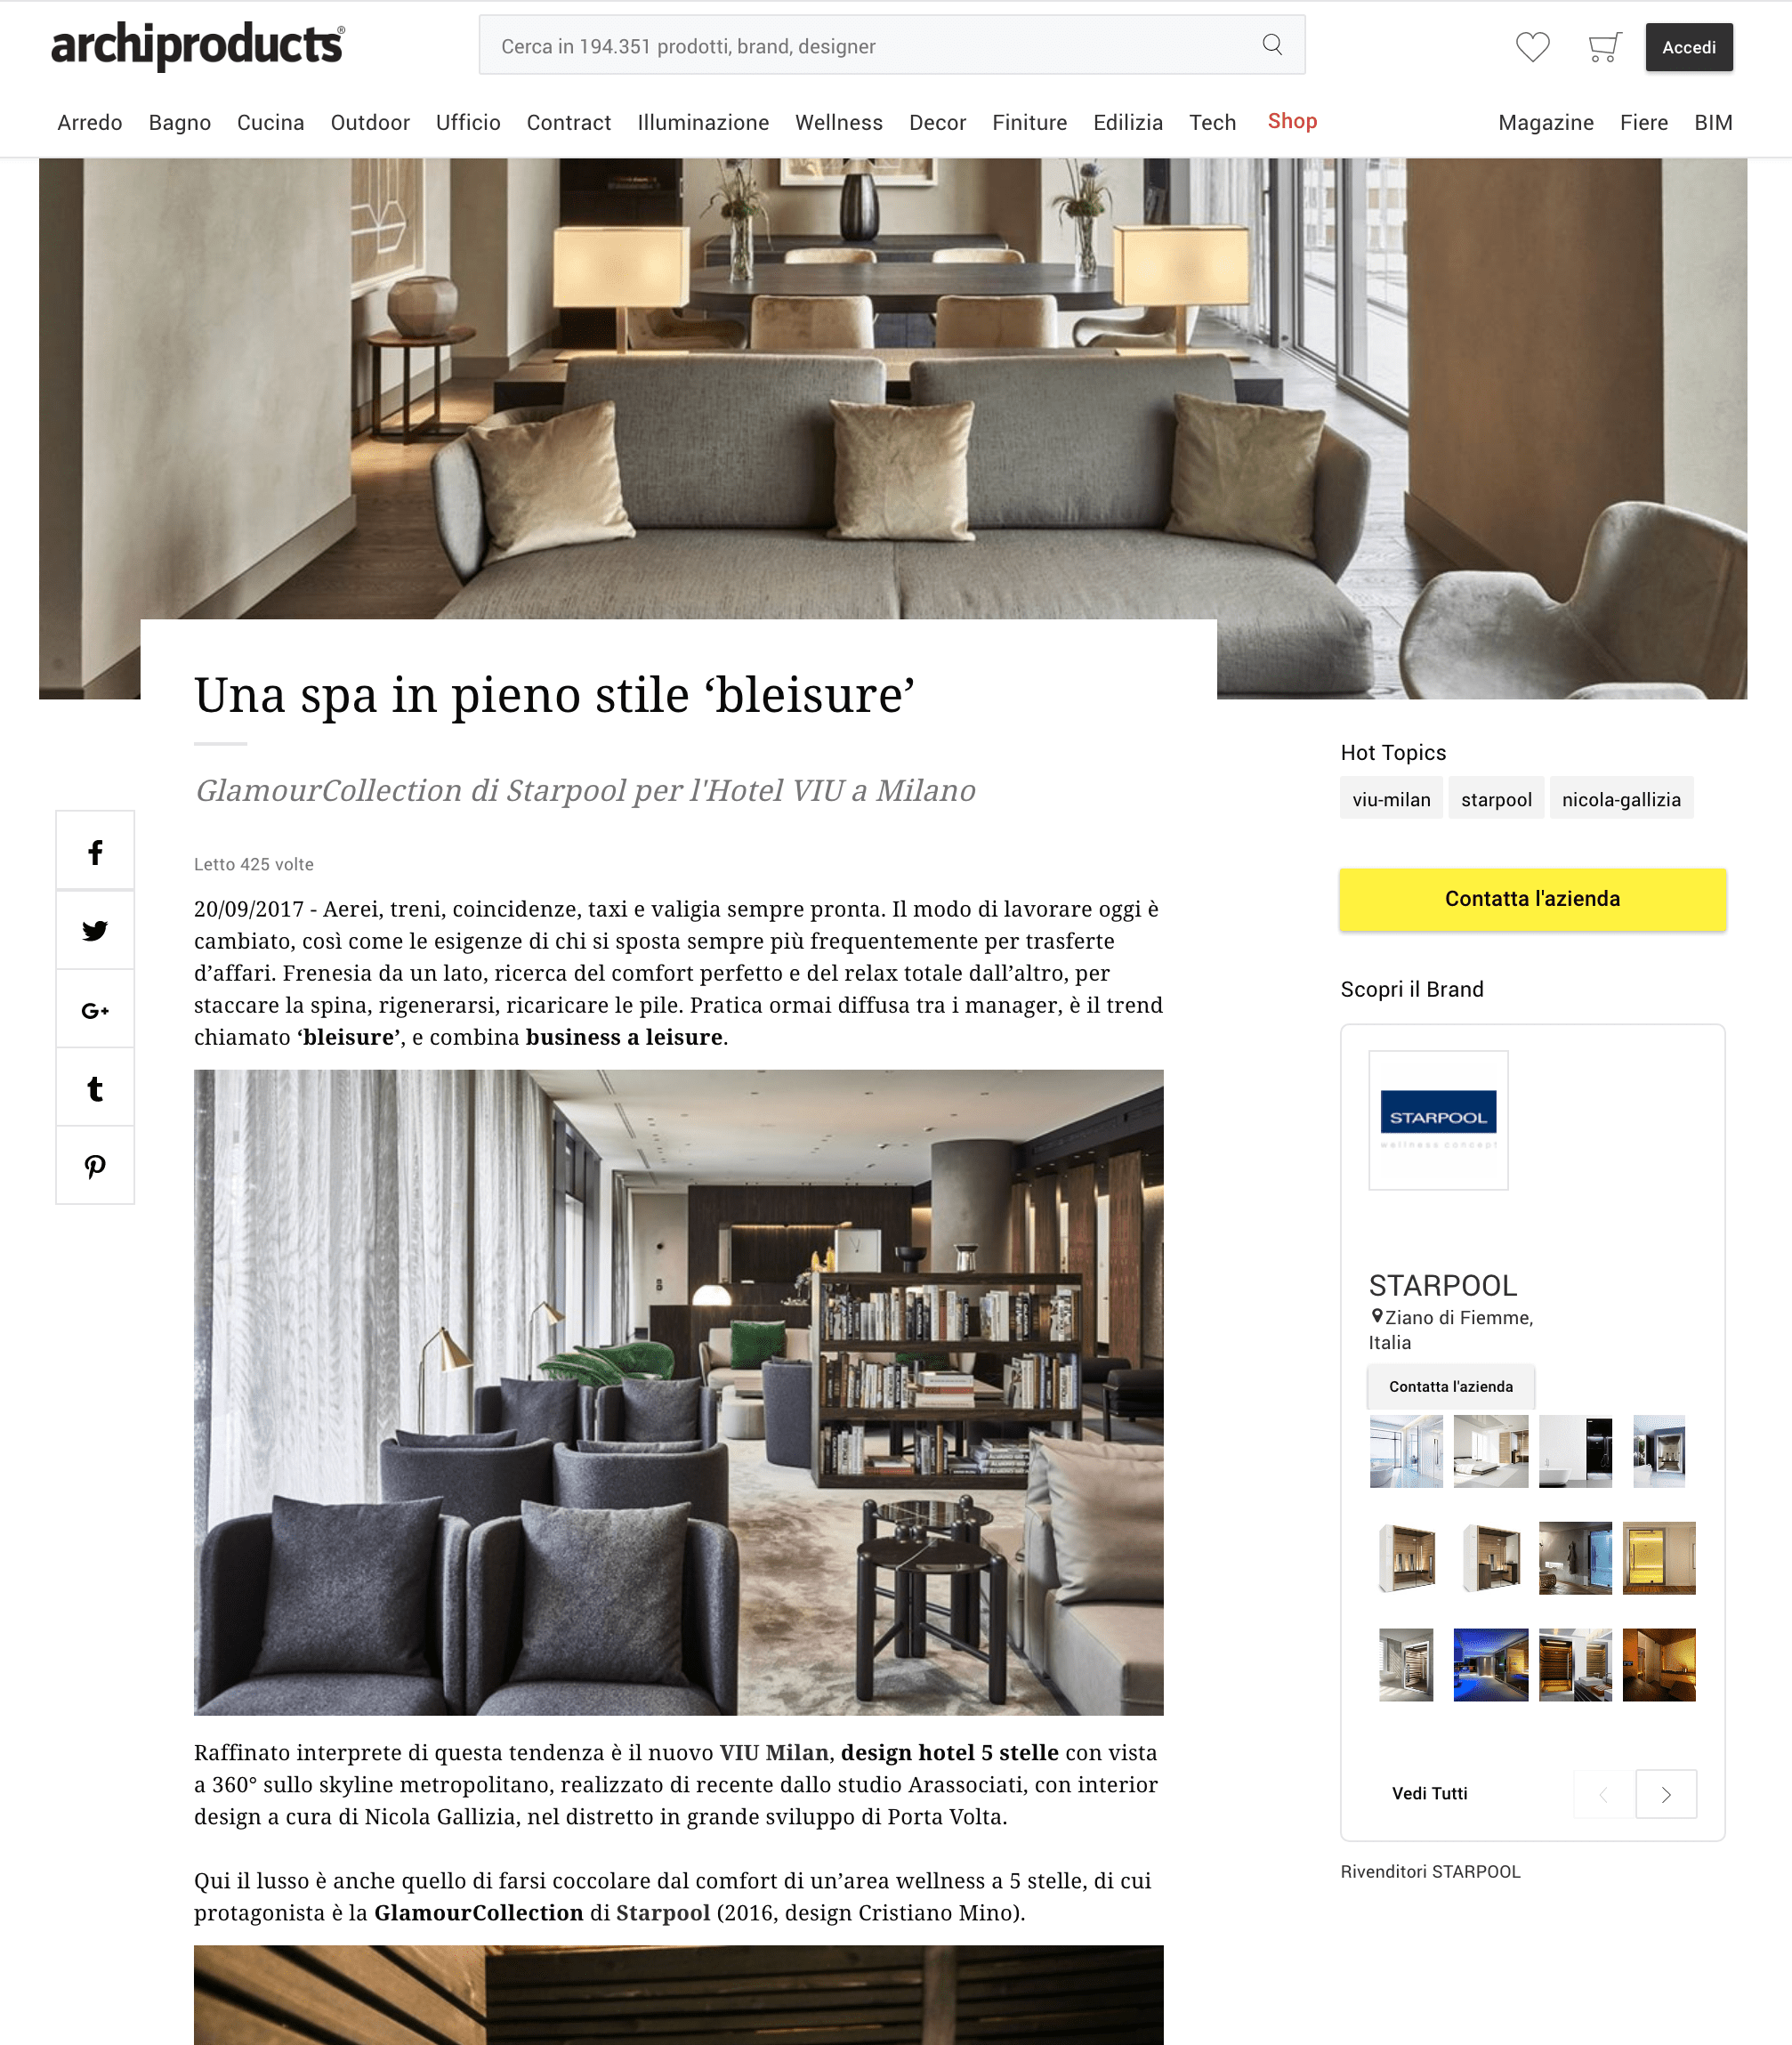 Archiproducts_Hotel_viu_milan_press_spa_bleisure